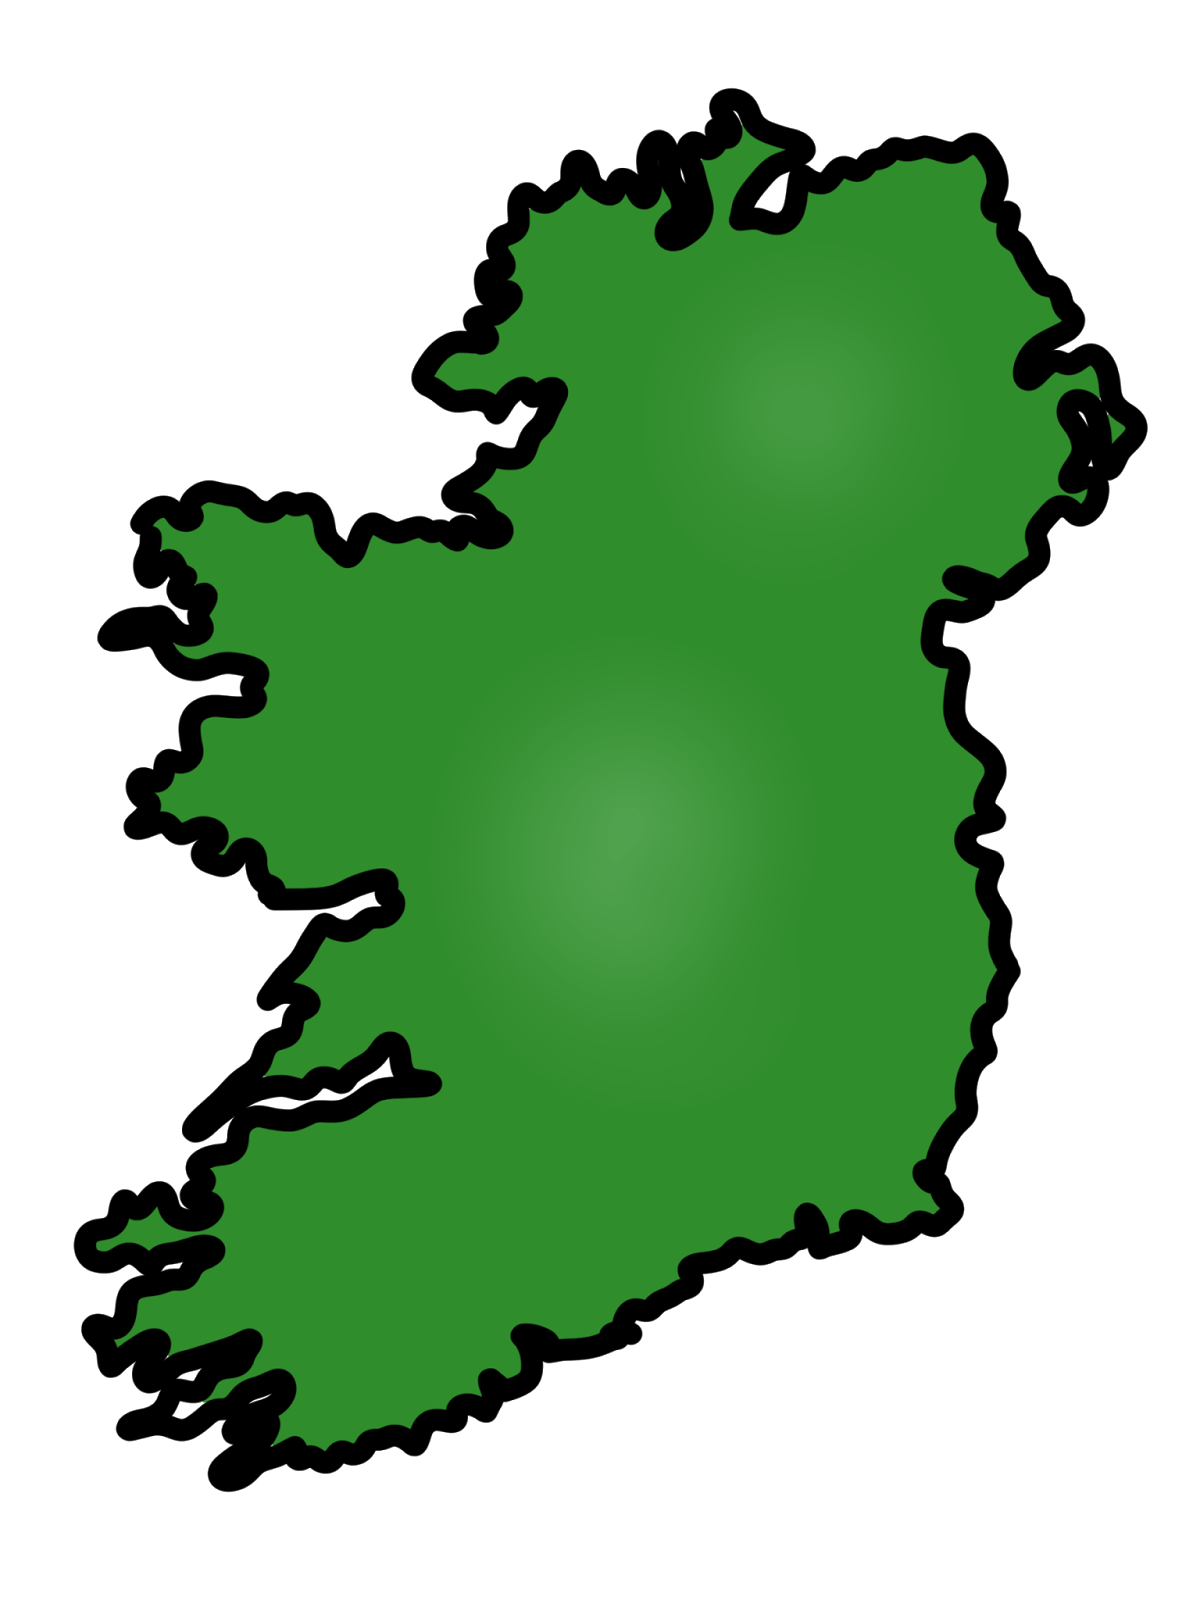 Simple Map Of Ireland.